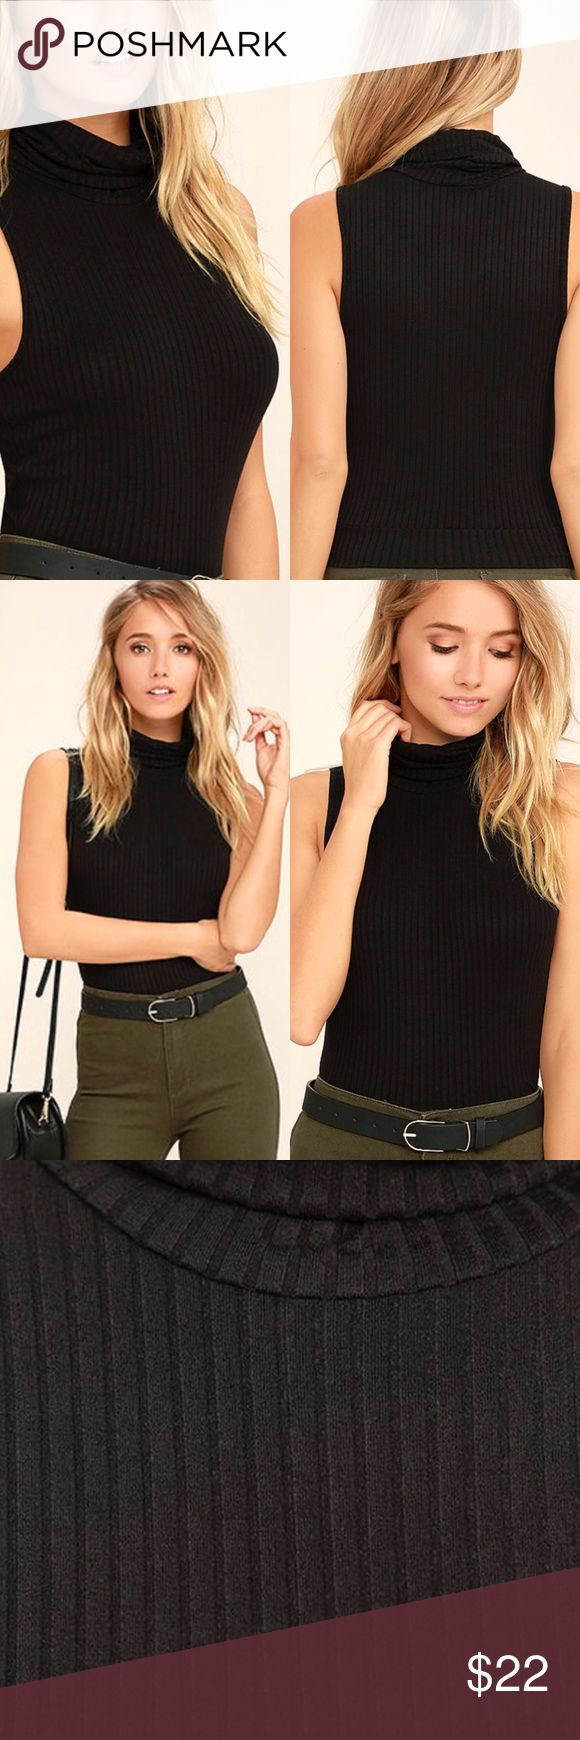 NEW Black Turtleneck crop top This stretchy ribbed knit is soft and lightweight throughout this turtleneck with a sleeveless bodice and cropped but can tuck into pants easily especially if wearing high waisted jeans or shorts. A wardrobe staple and avail in ivory Tops